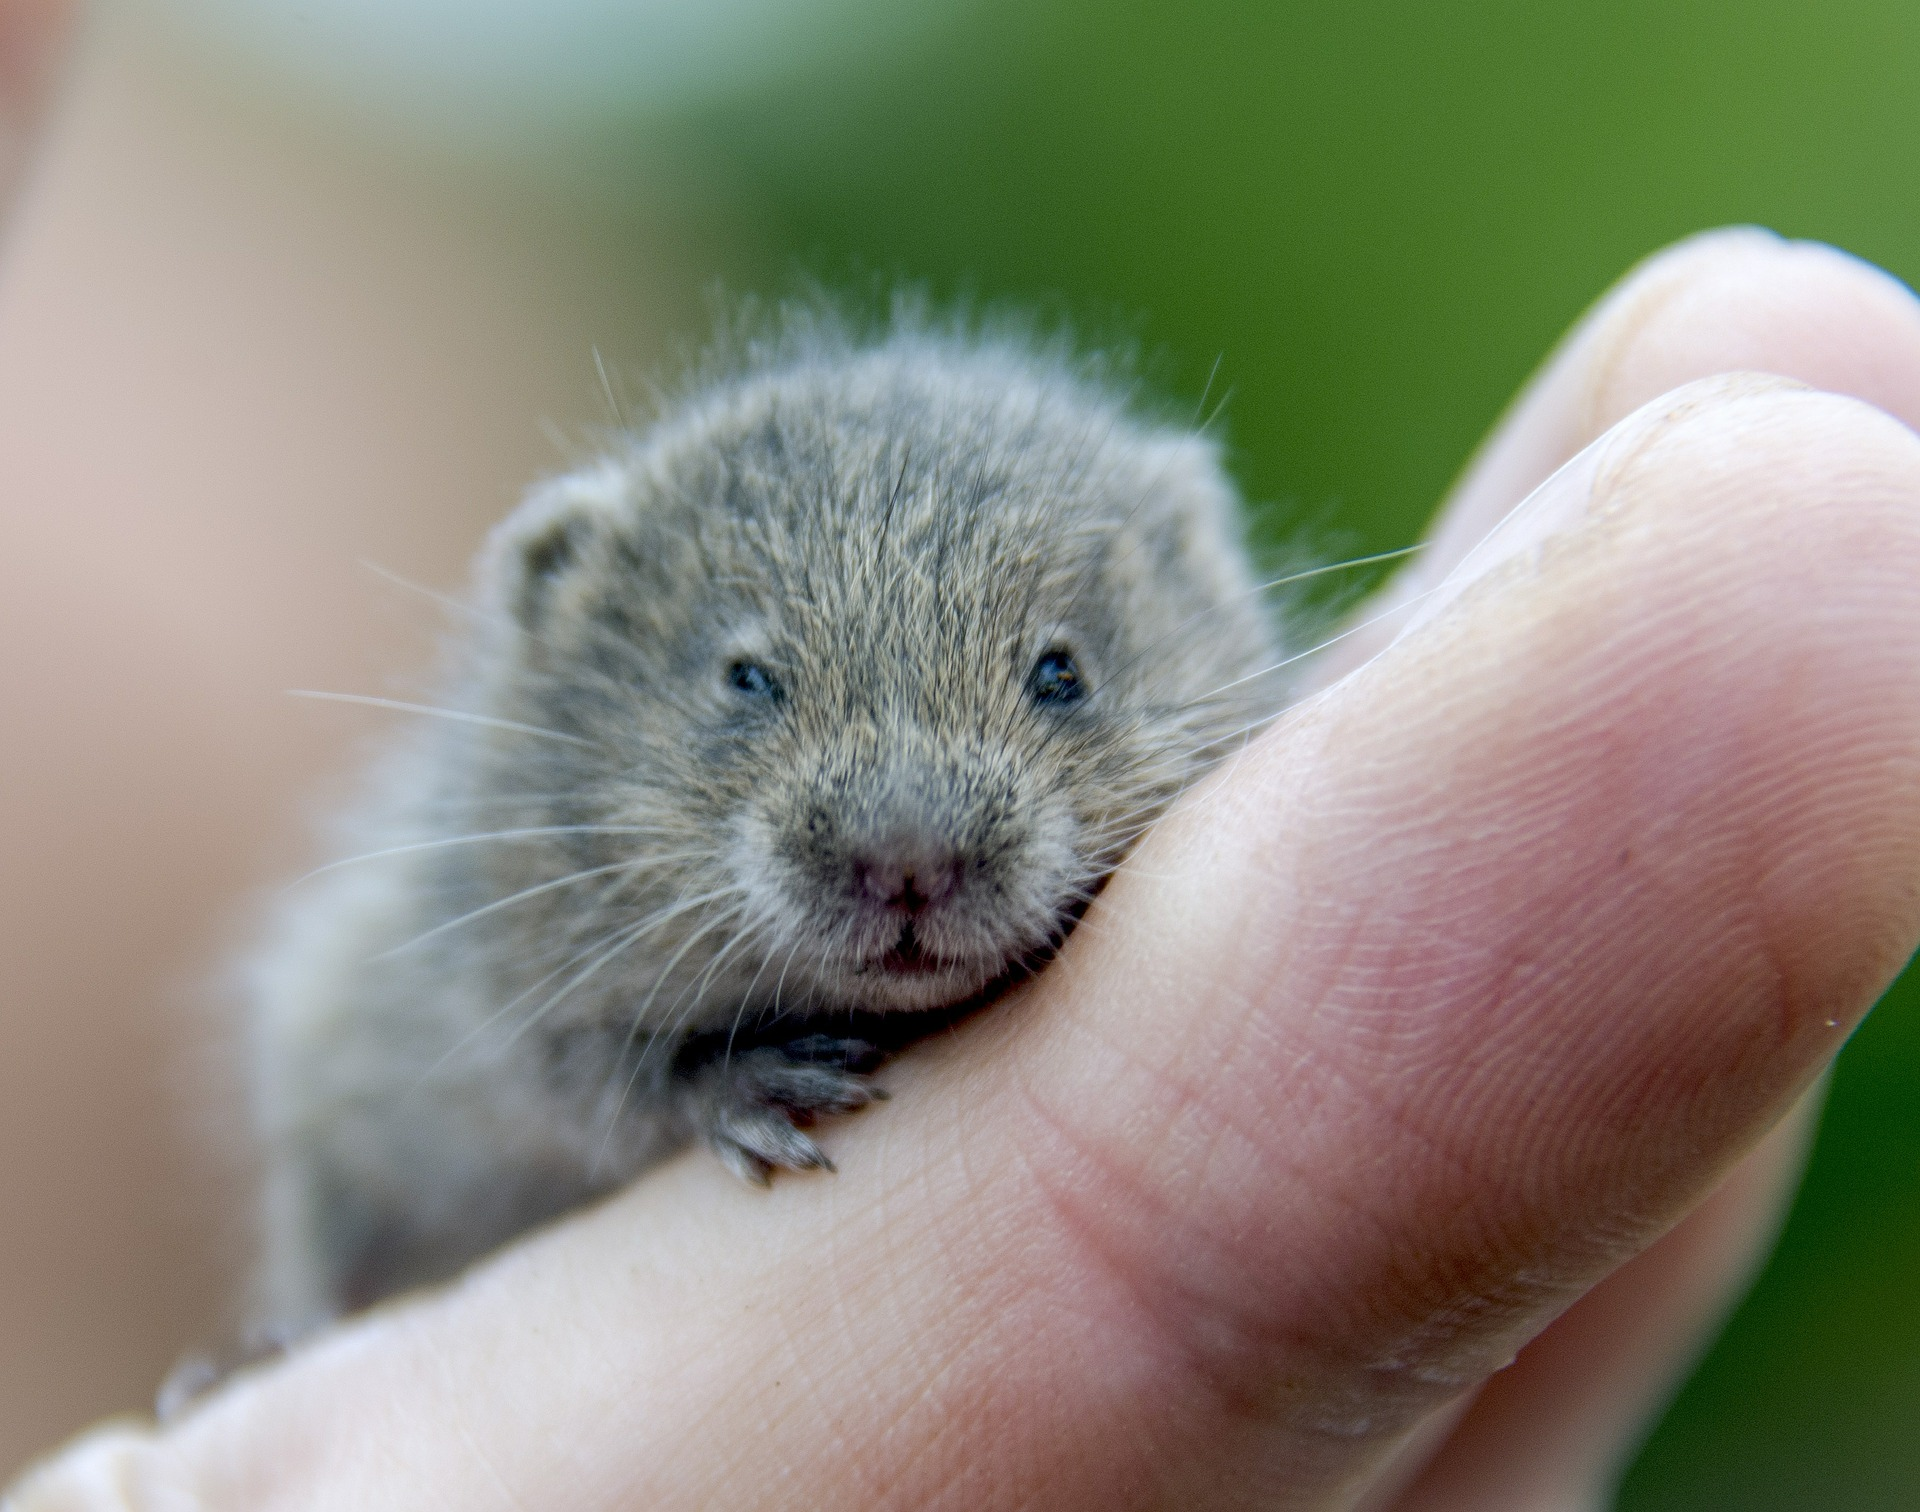 What do voles look like?